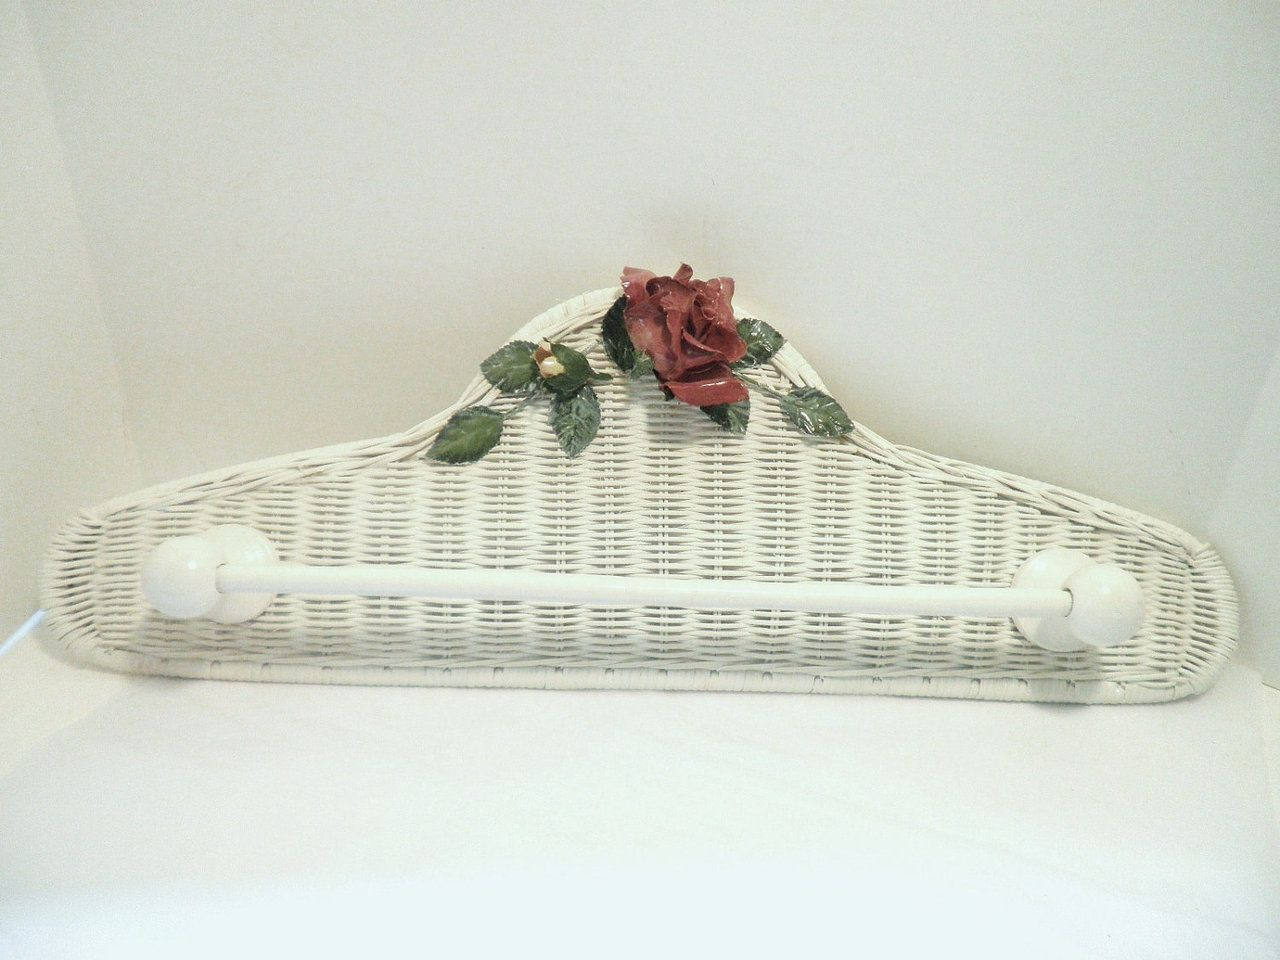 Roses On White Wicker Towel Rack By @Pascalene